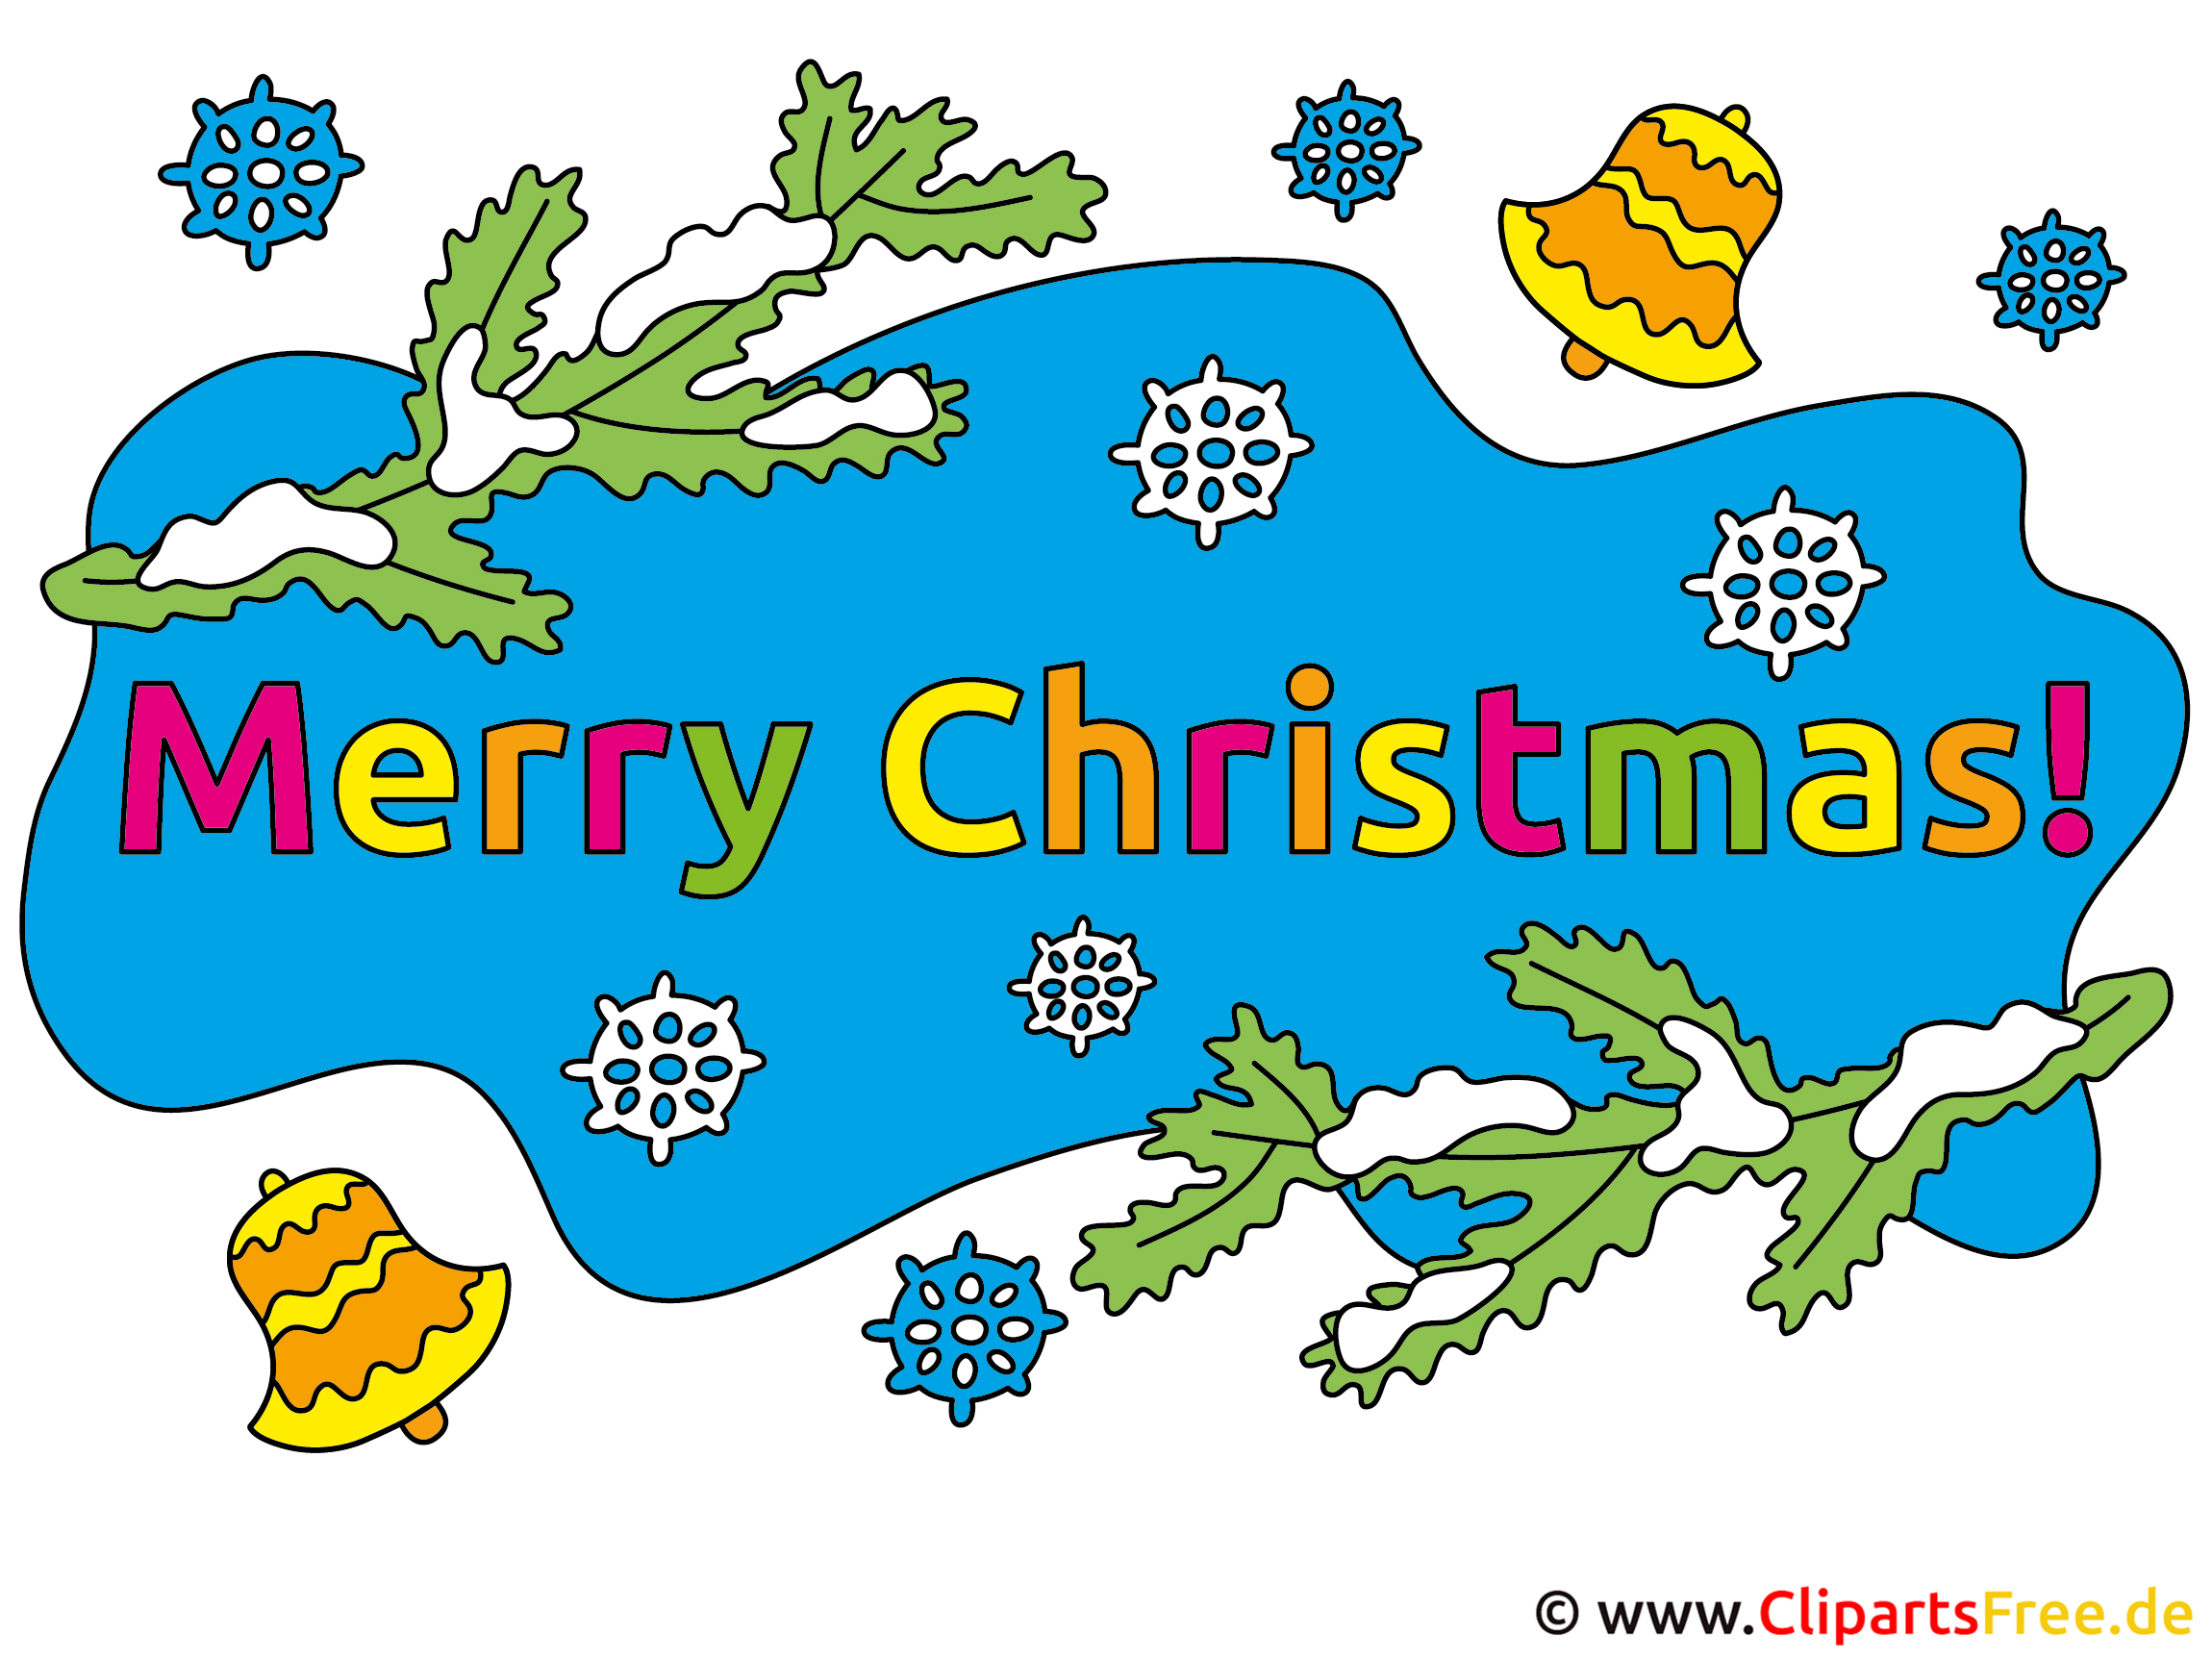 Clip Art Merry Christmas download gratis